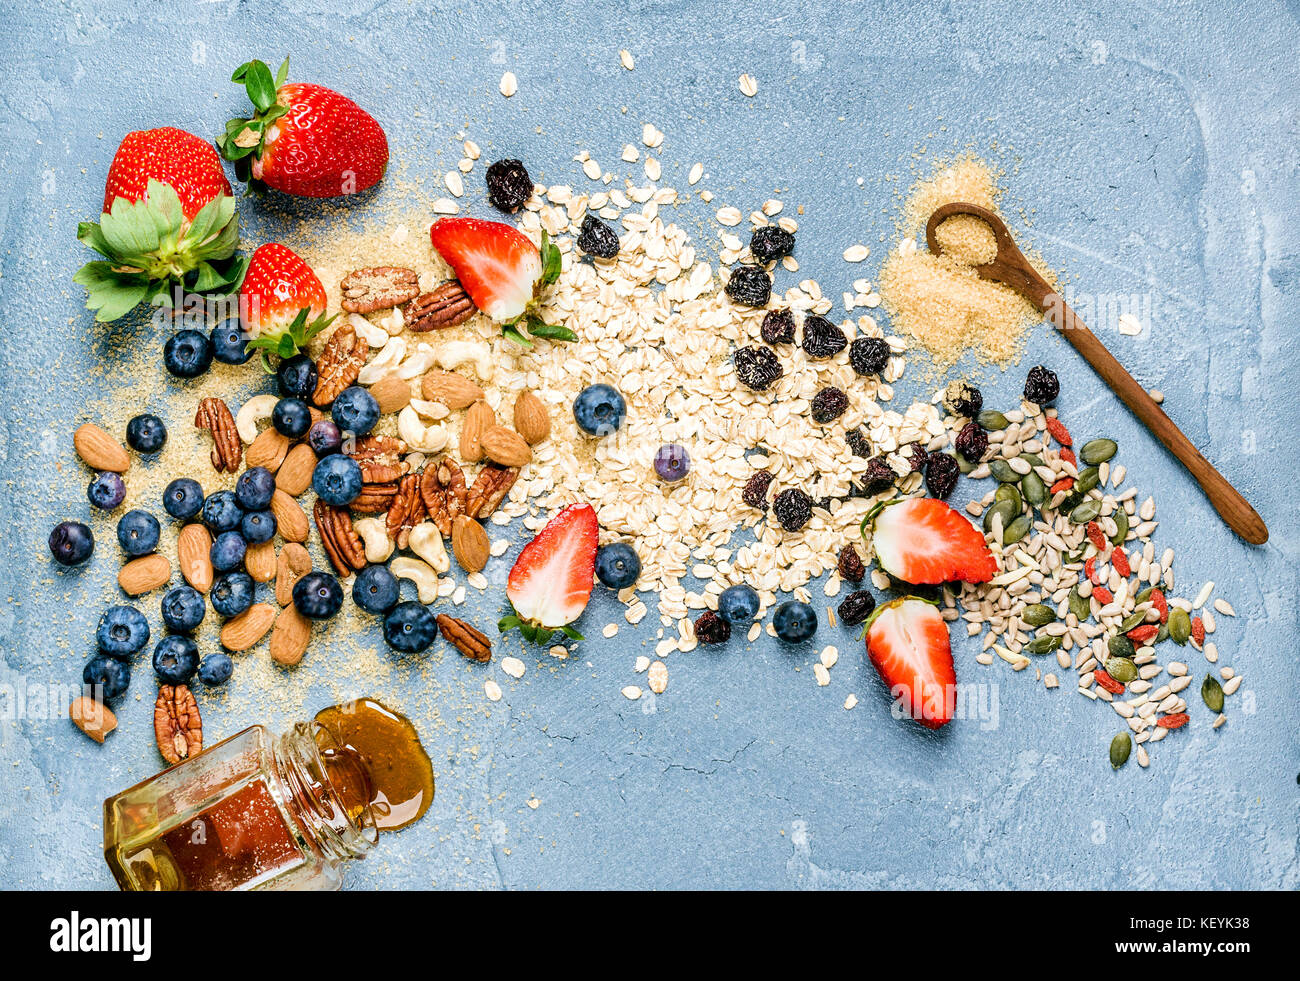 Ingredients for cooking healthy breakfast - Stock Image